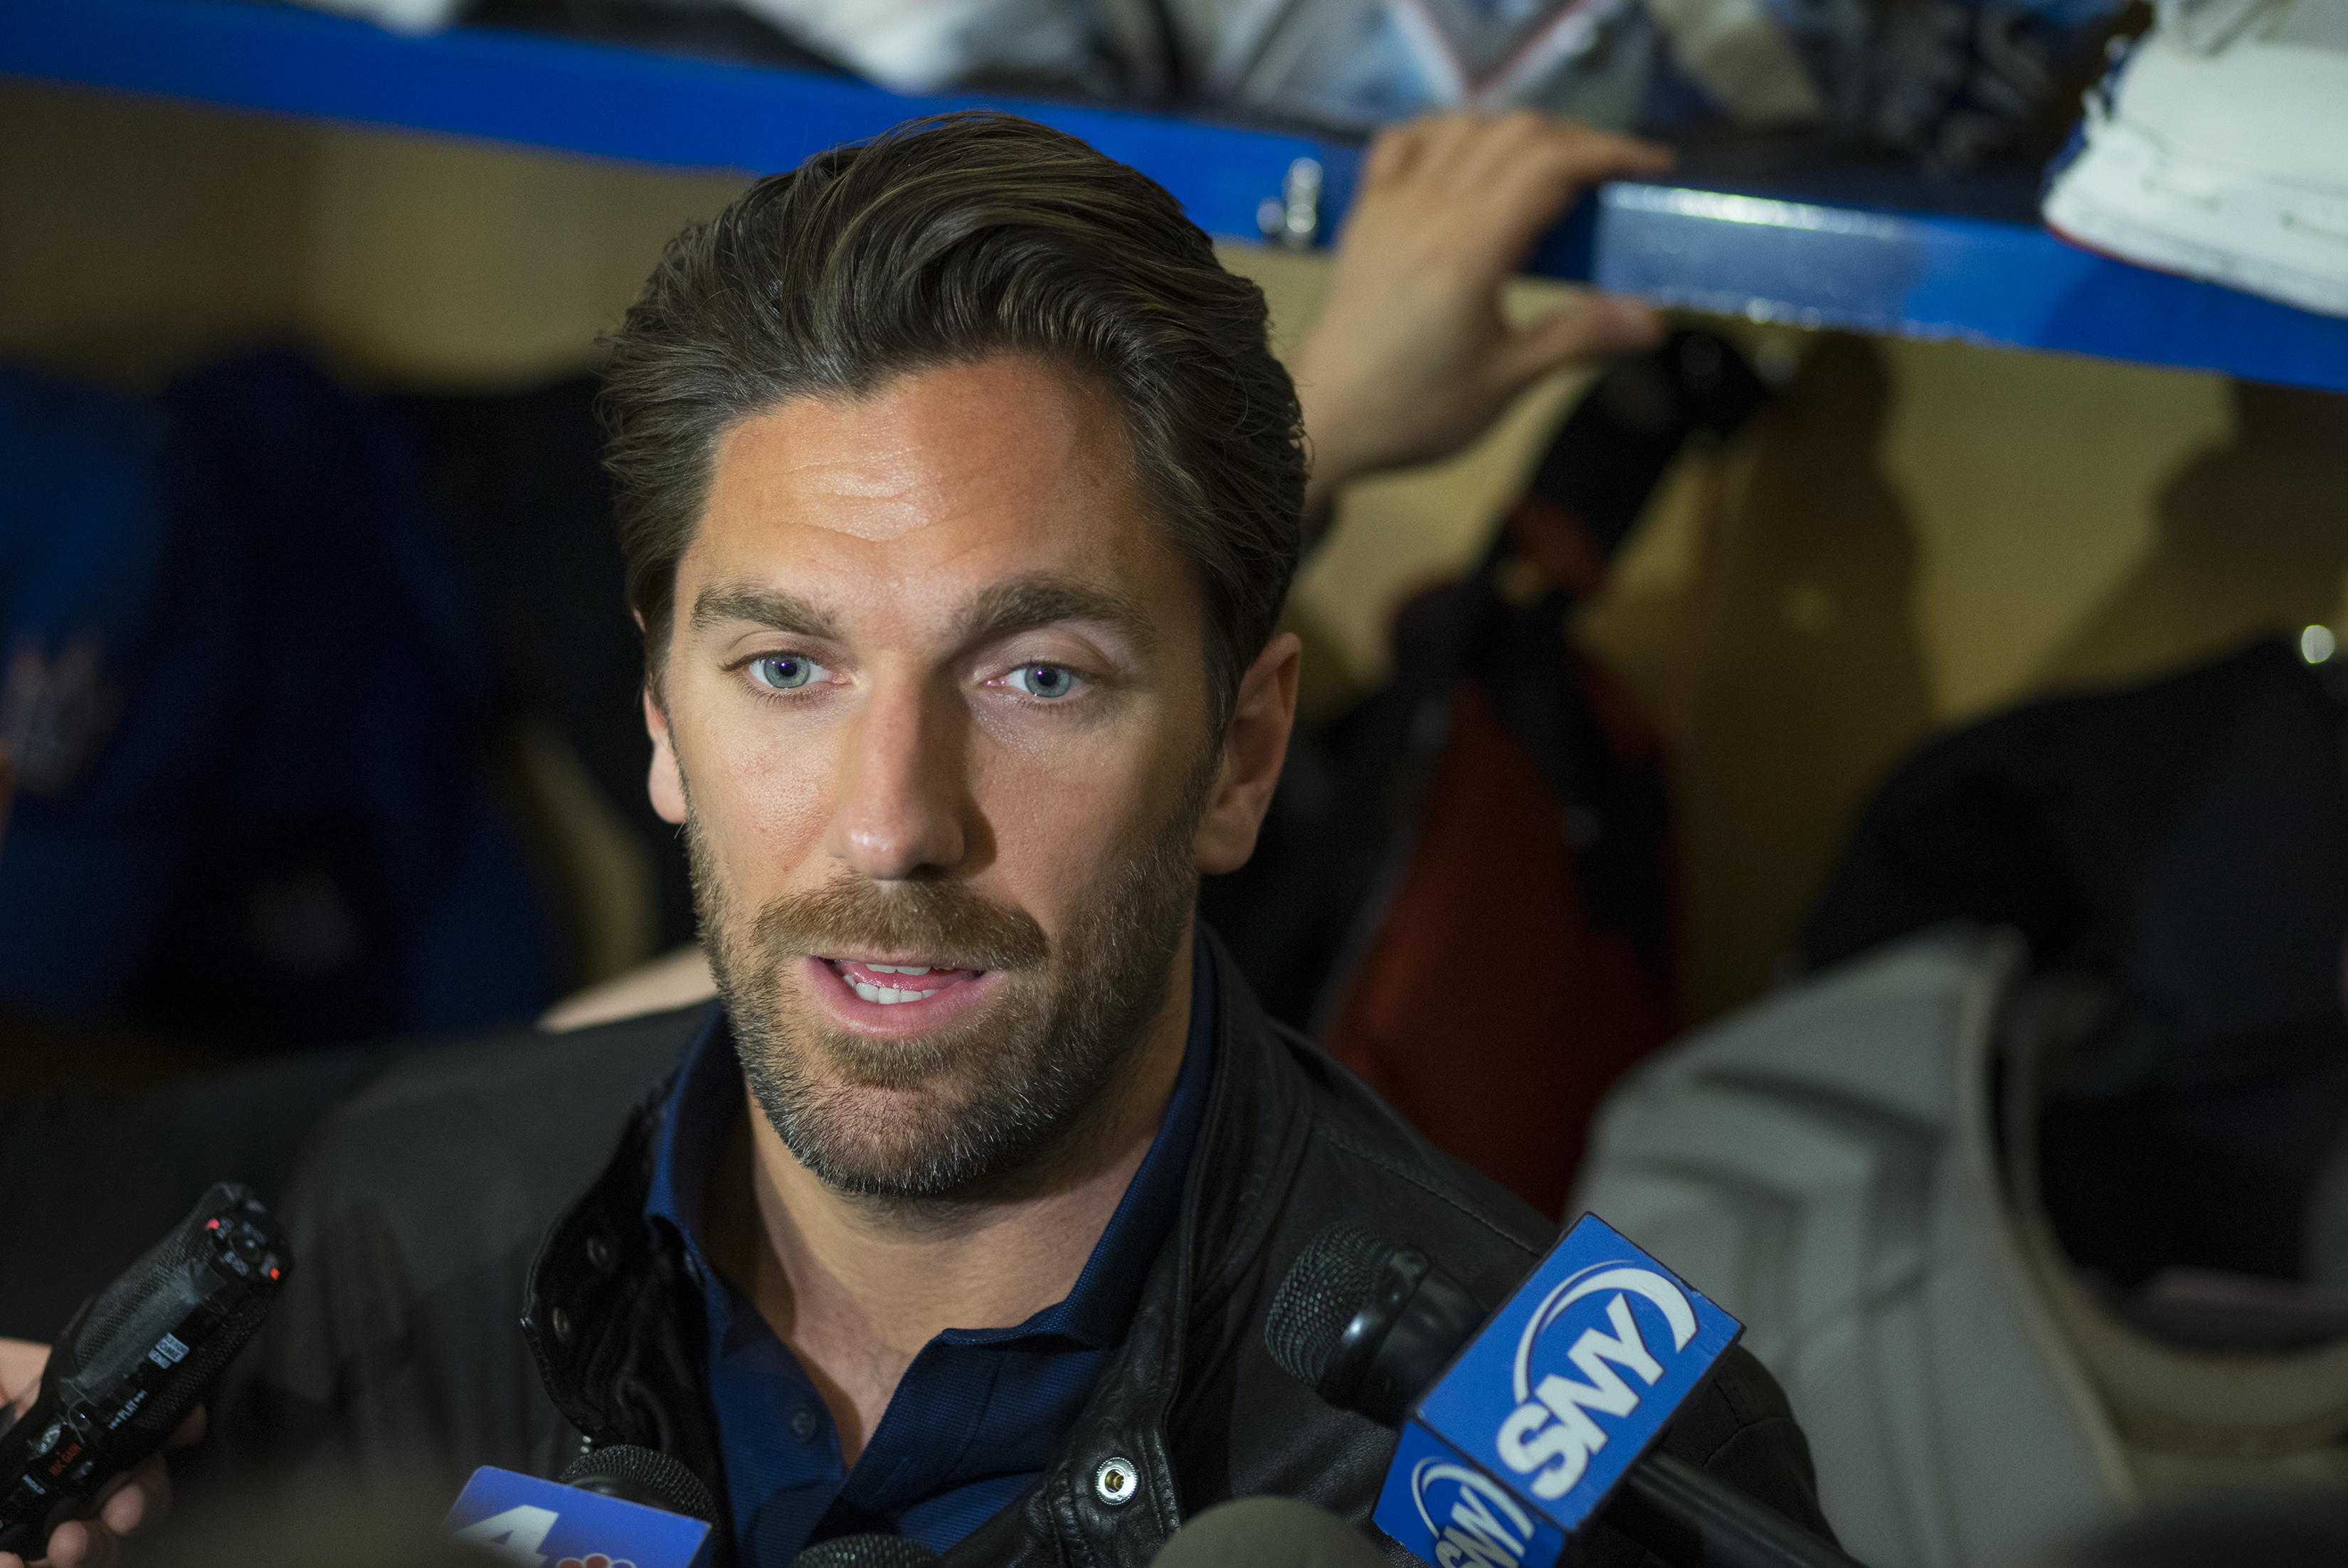 New York Rangers Henrik Lundqvist speaks to media in the locker room at the team's Westchester training facility in Greenburgh, N.Y., Monday, June 1, 2015. The Rangers came up a game short of making the Stanley Cup finals for the second straight year. (AP